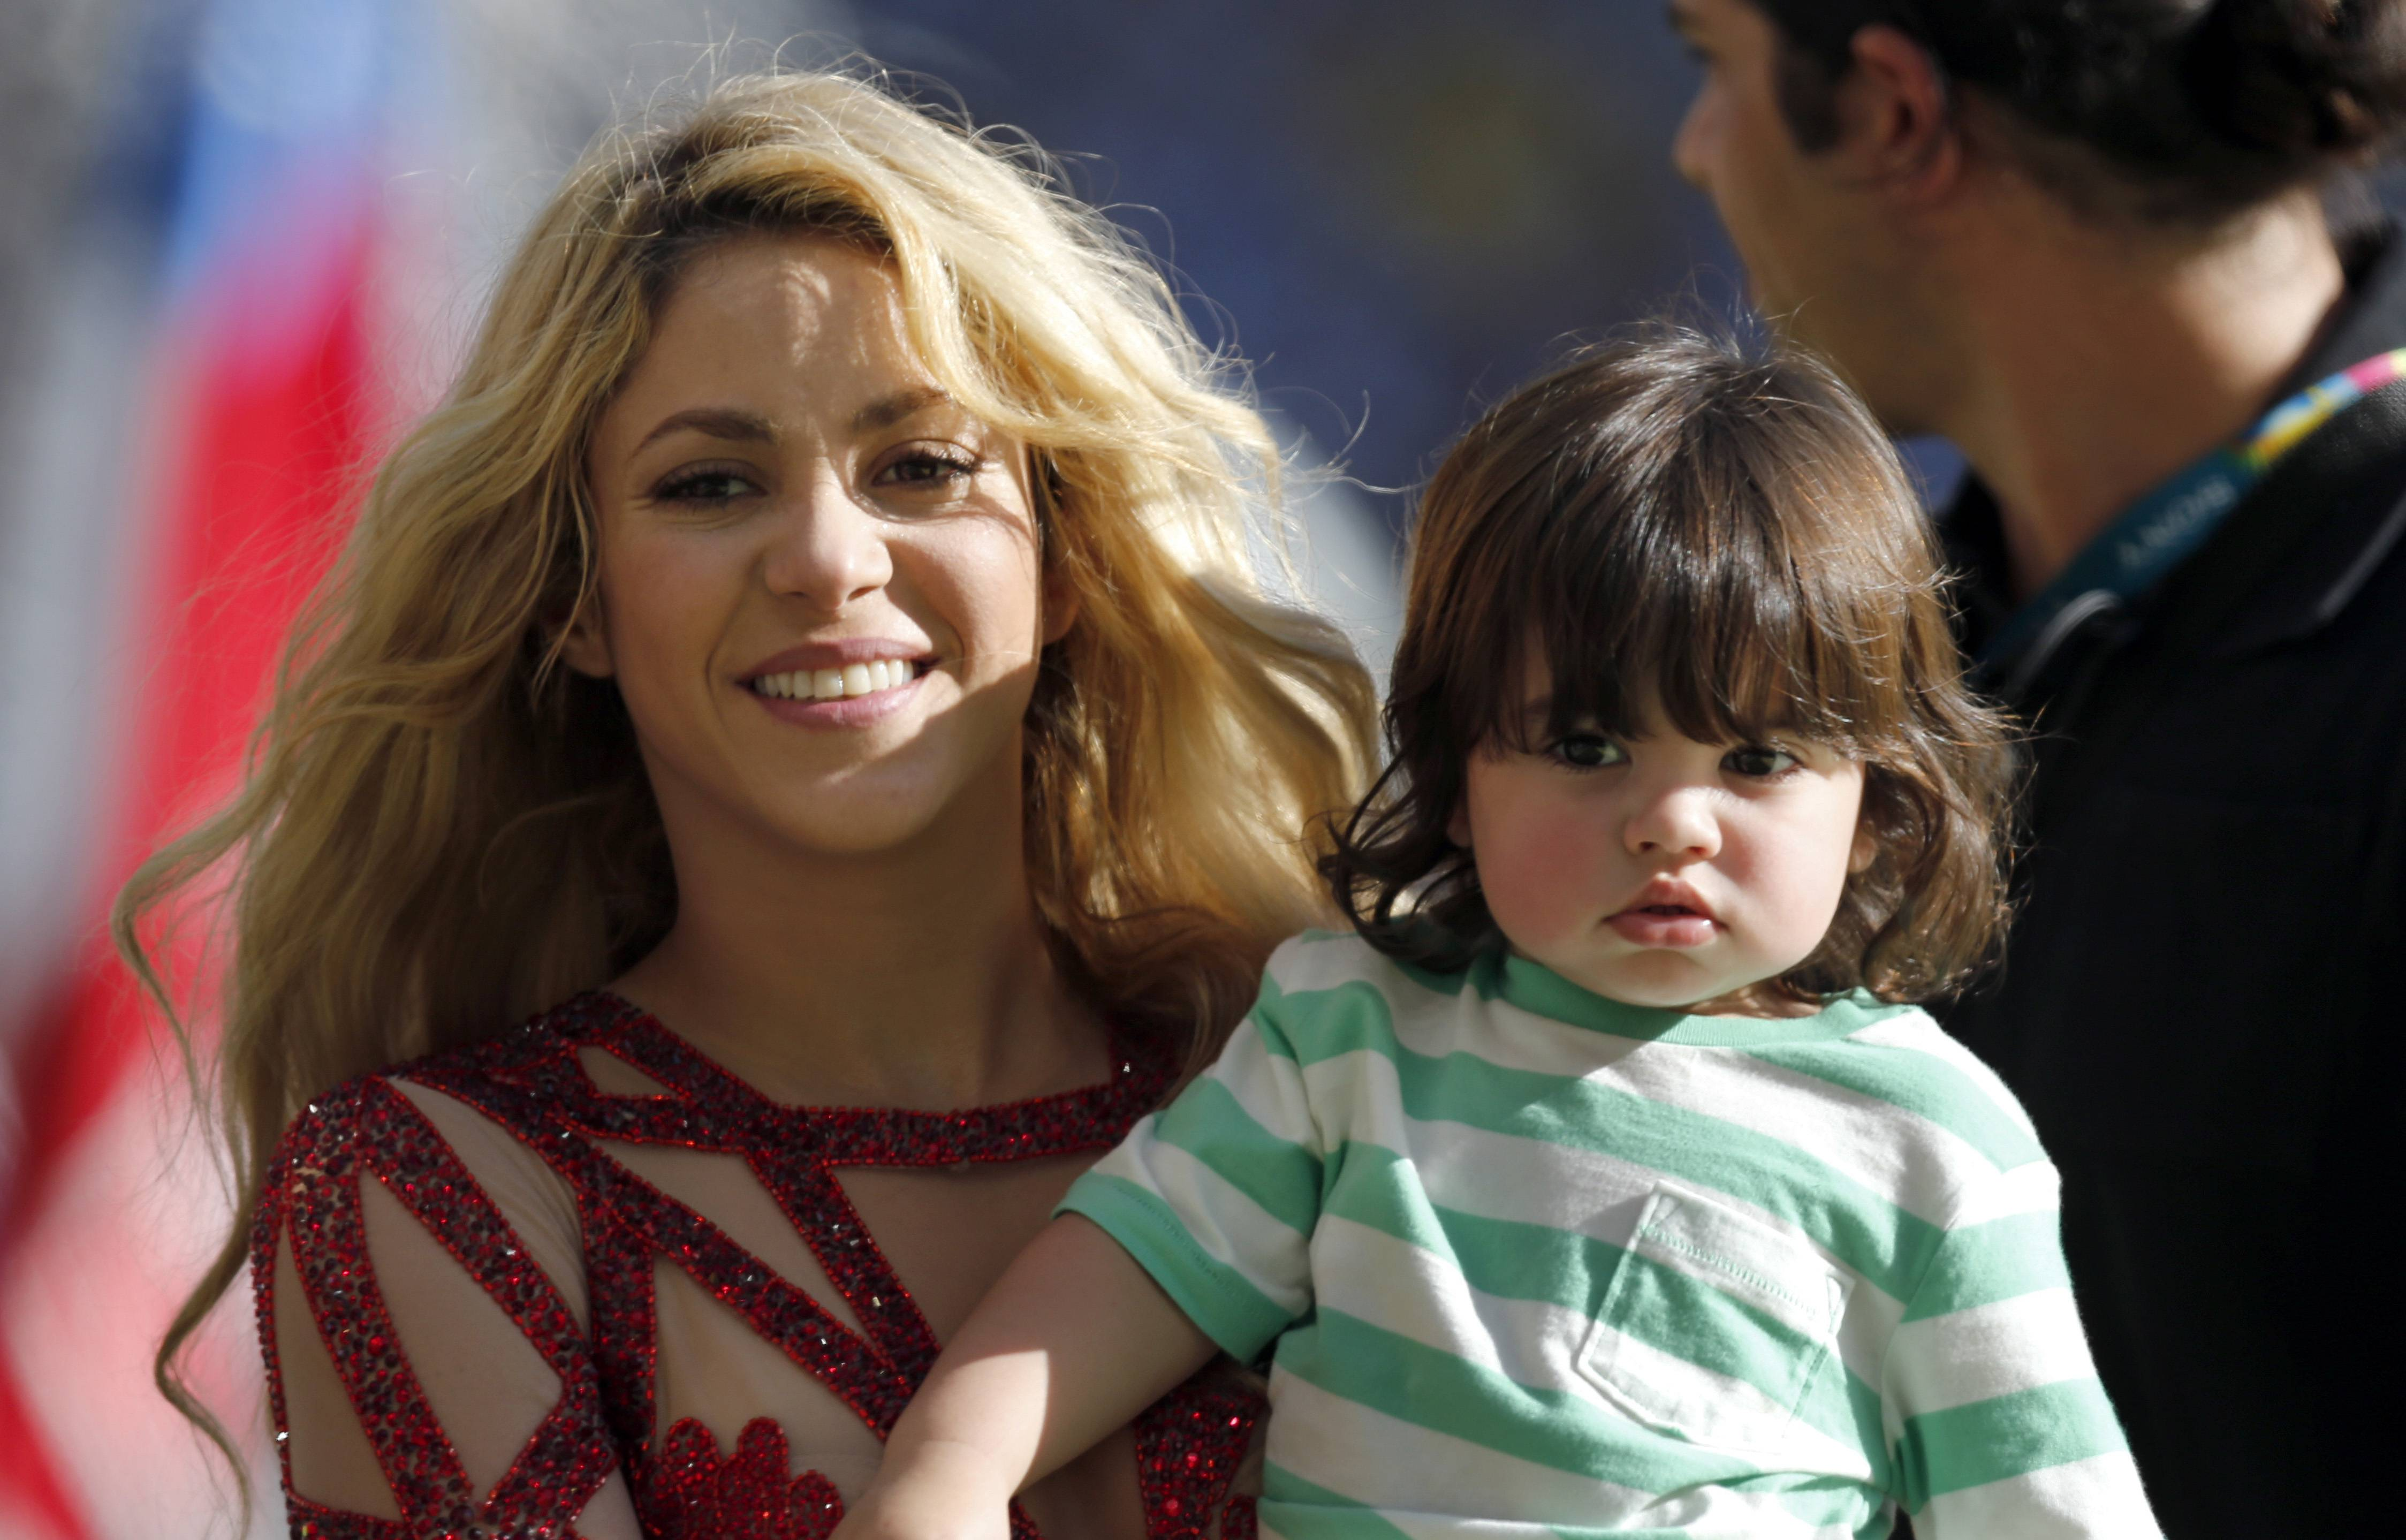 Shakira announced that she is pregnant on her Facebook and Twitter pages on Thursday.